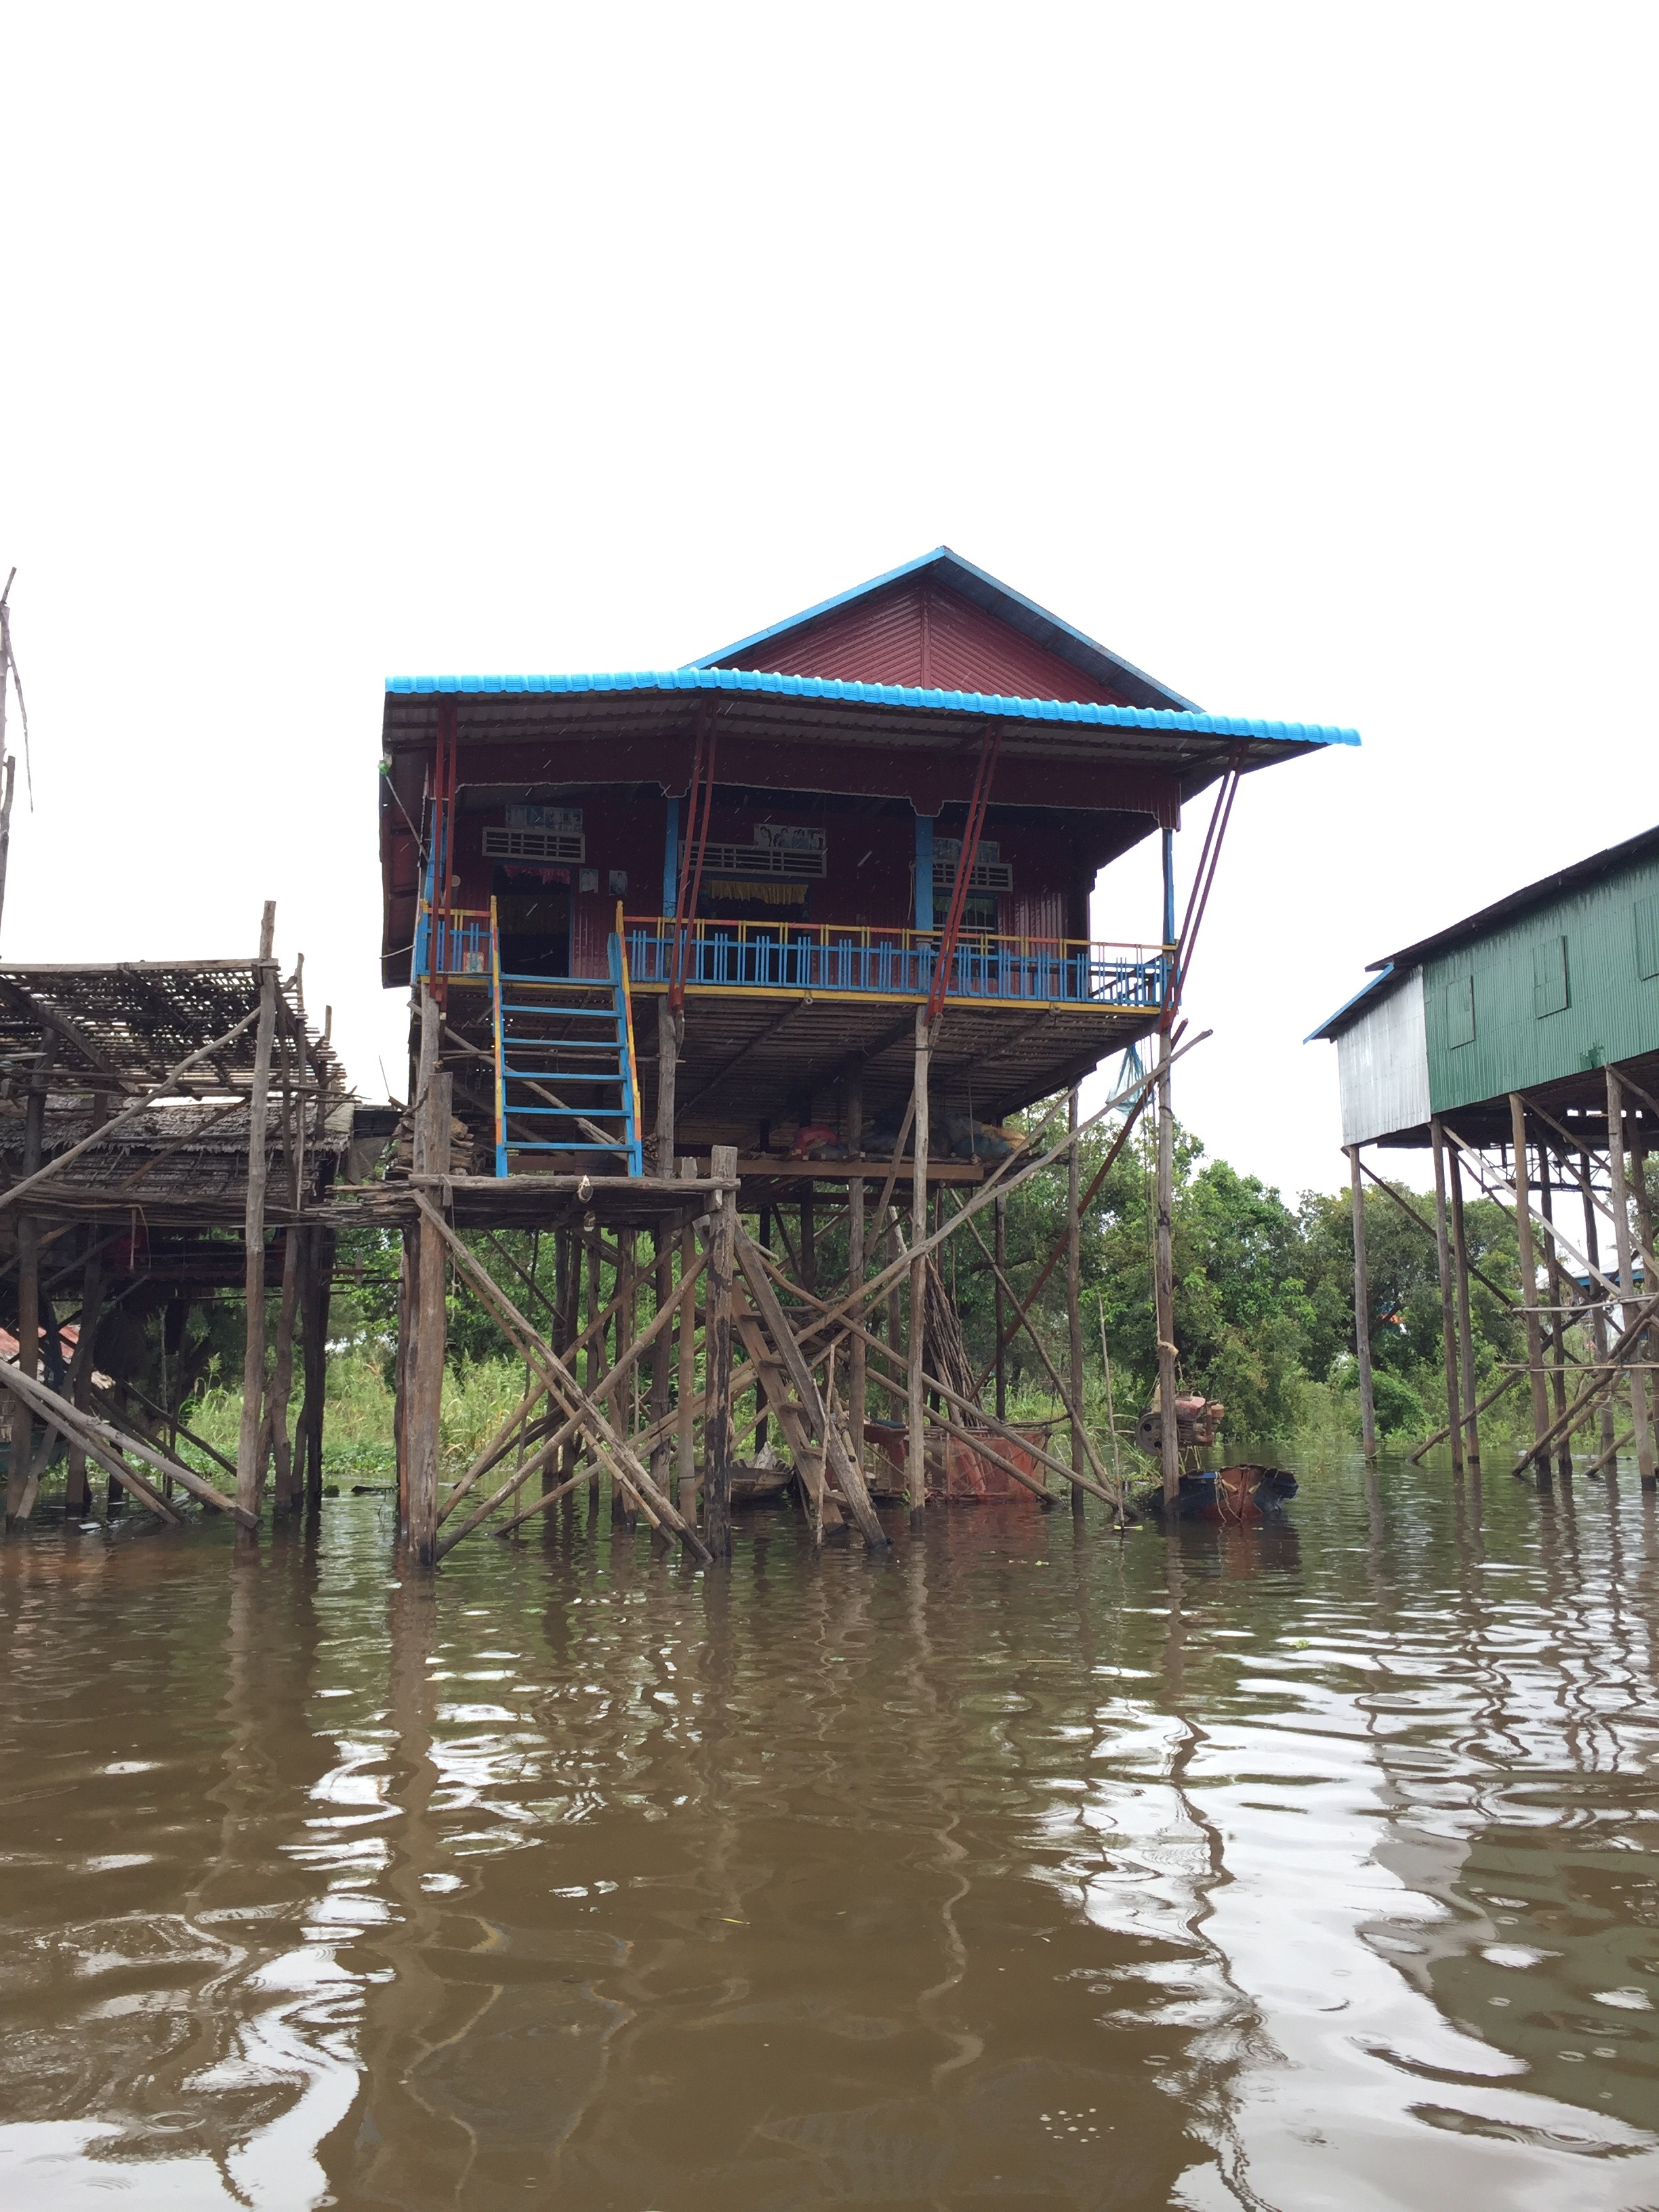 Some Of The Houses Of The Floating Village In Siem Reap, Cambodia